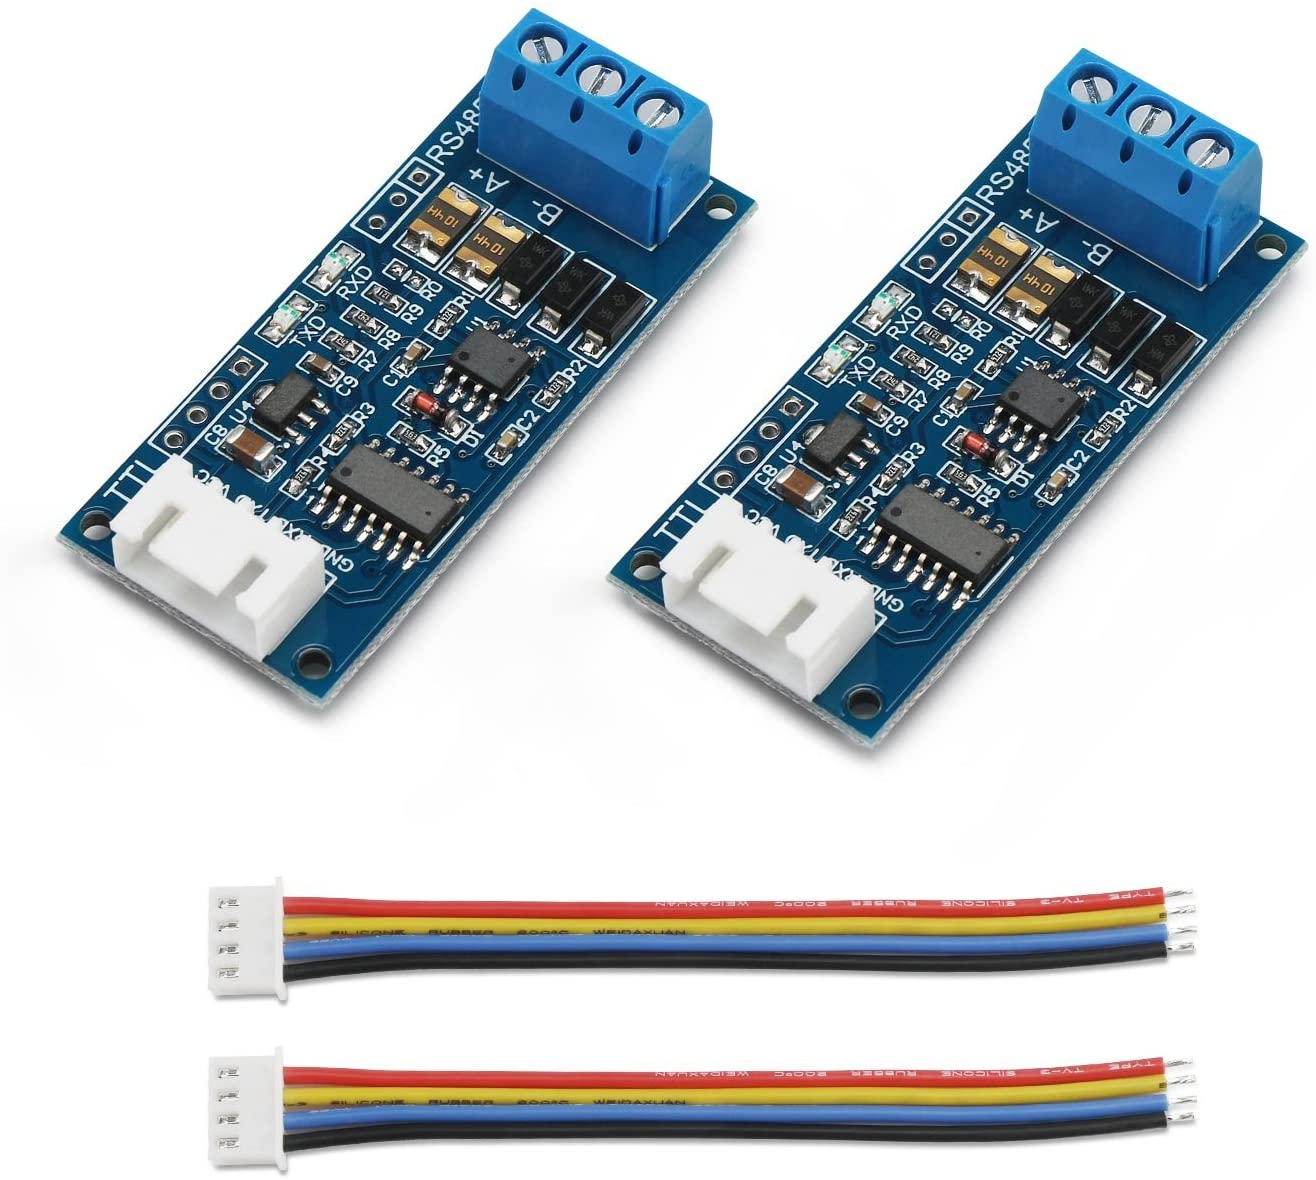 2pcs TTL to RS485 Adapter Module, DROK 485 to TTL Signal Single Chip Serial Port Level Converter 3.3V 5V Board with RXD, TXD Indicator Lights